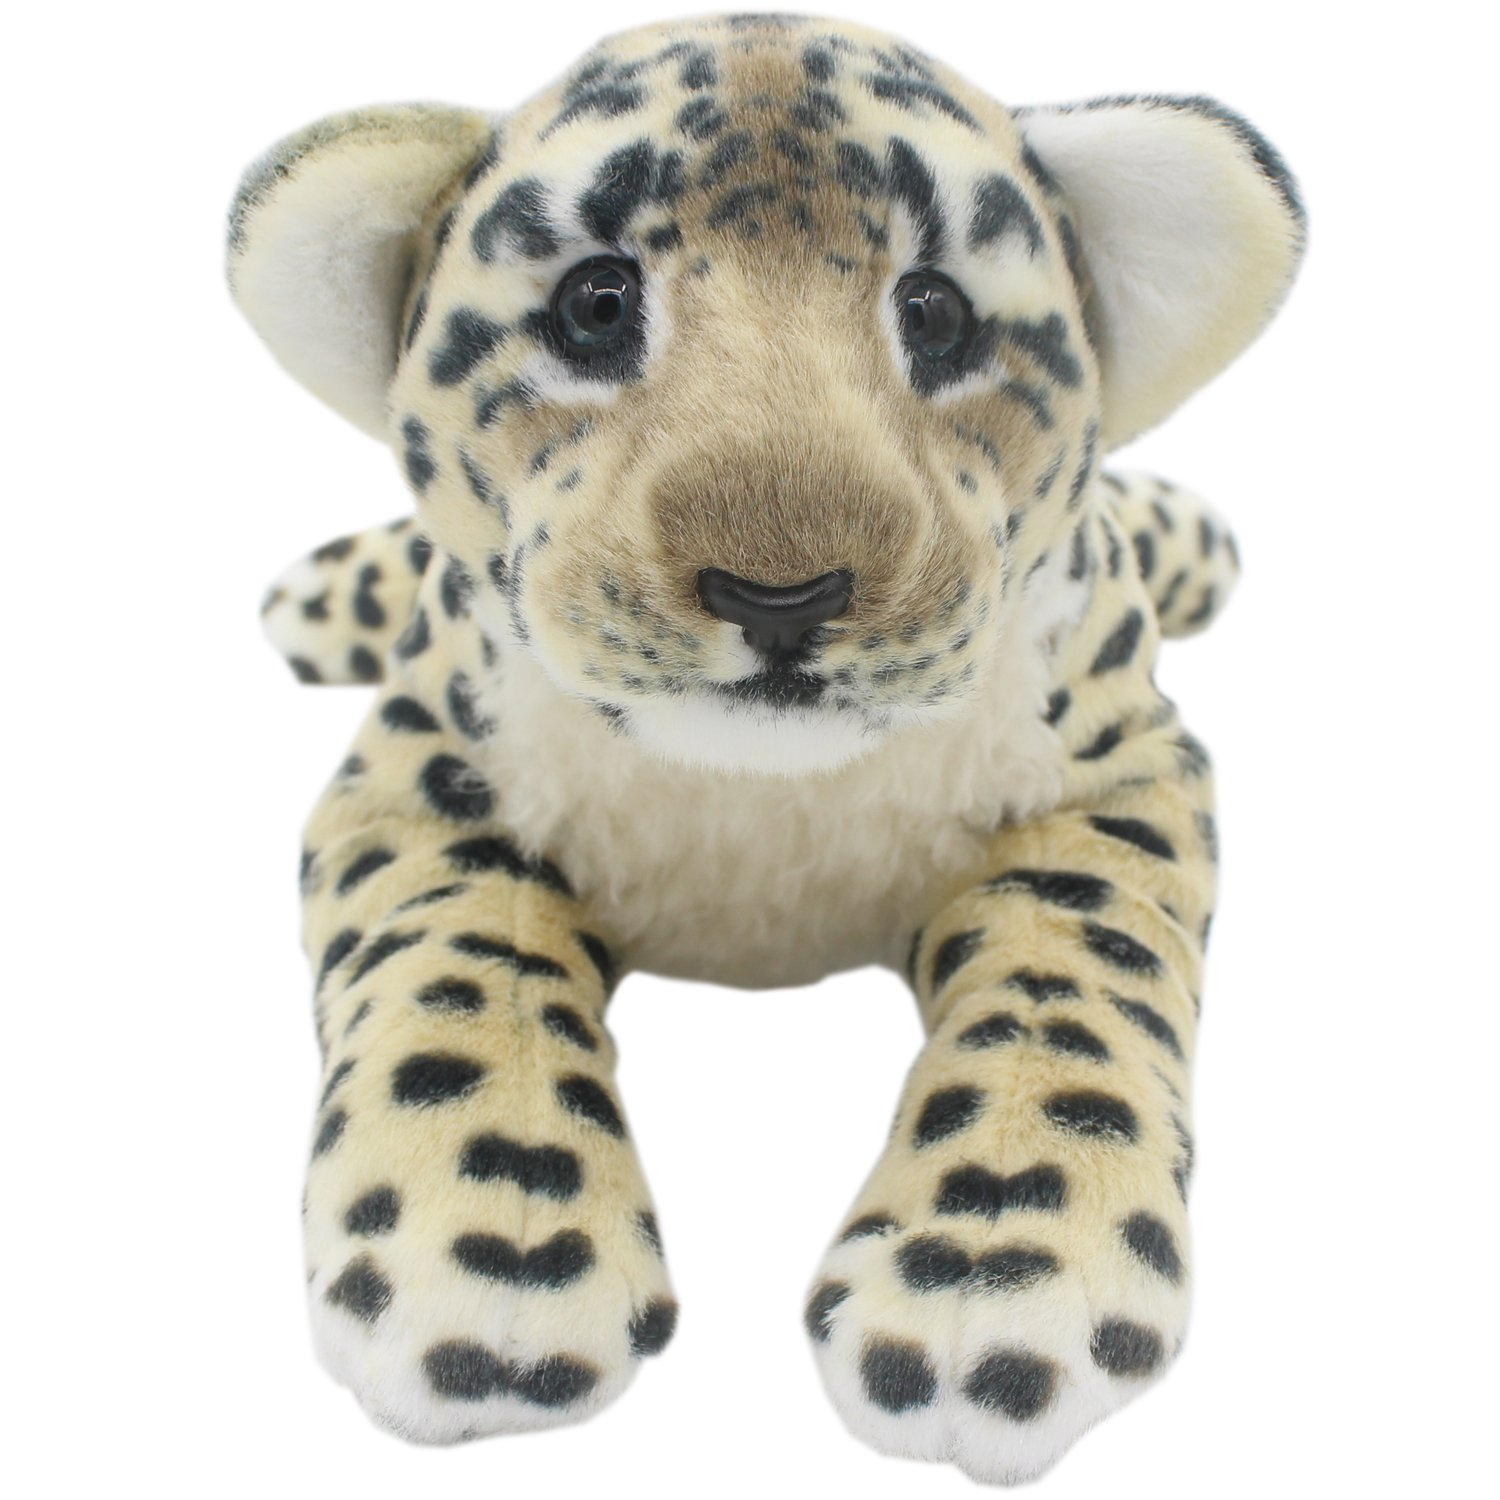 TAGLN The Jungle Animals Stuffed Plush Toys Tiger Leopard Panther Lioness Pillows Brown Tiger, 24 Inch